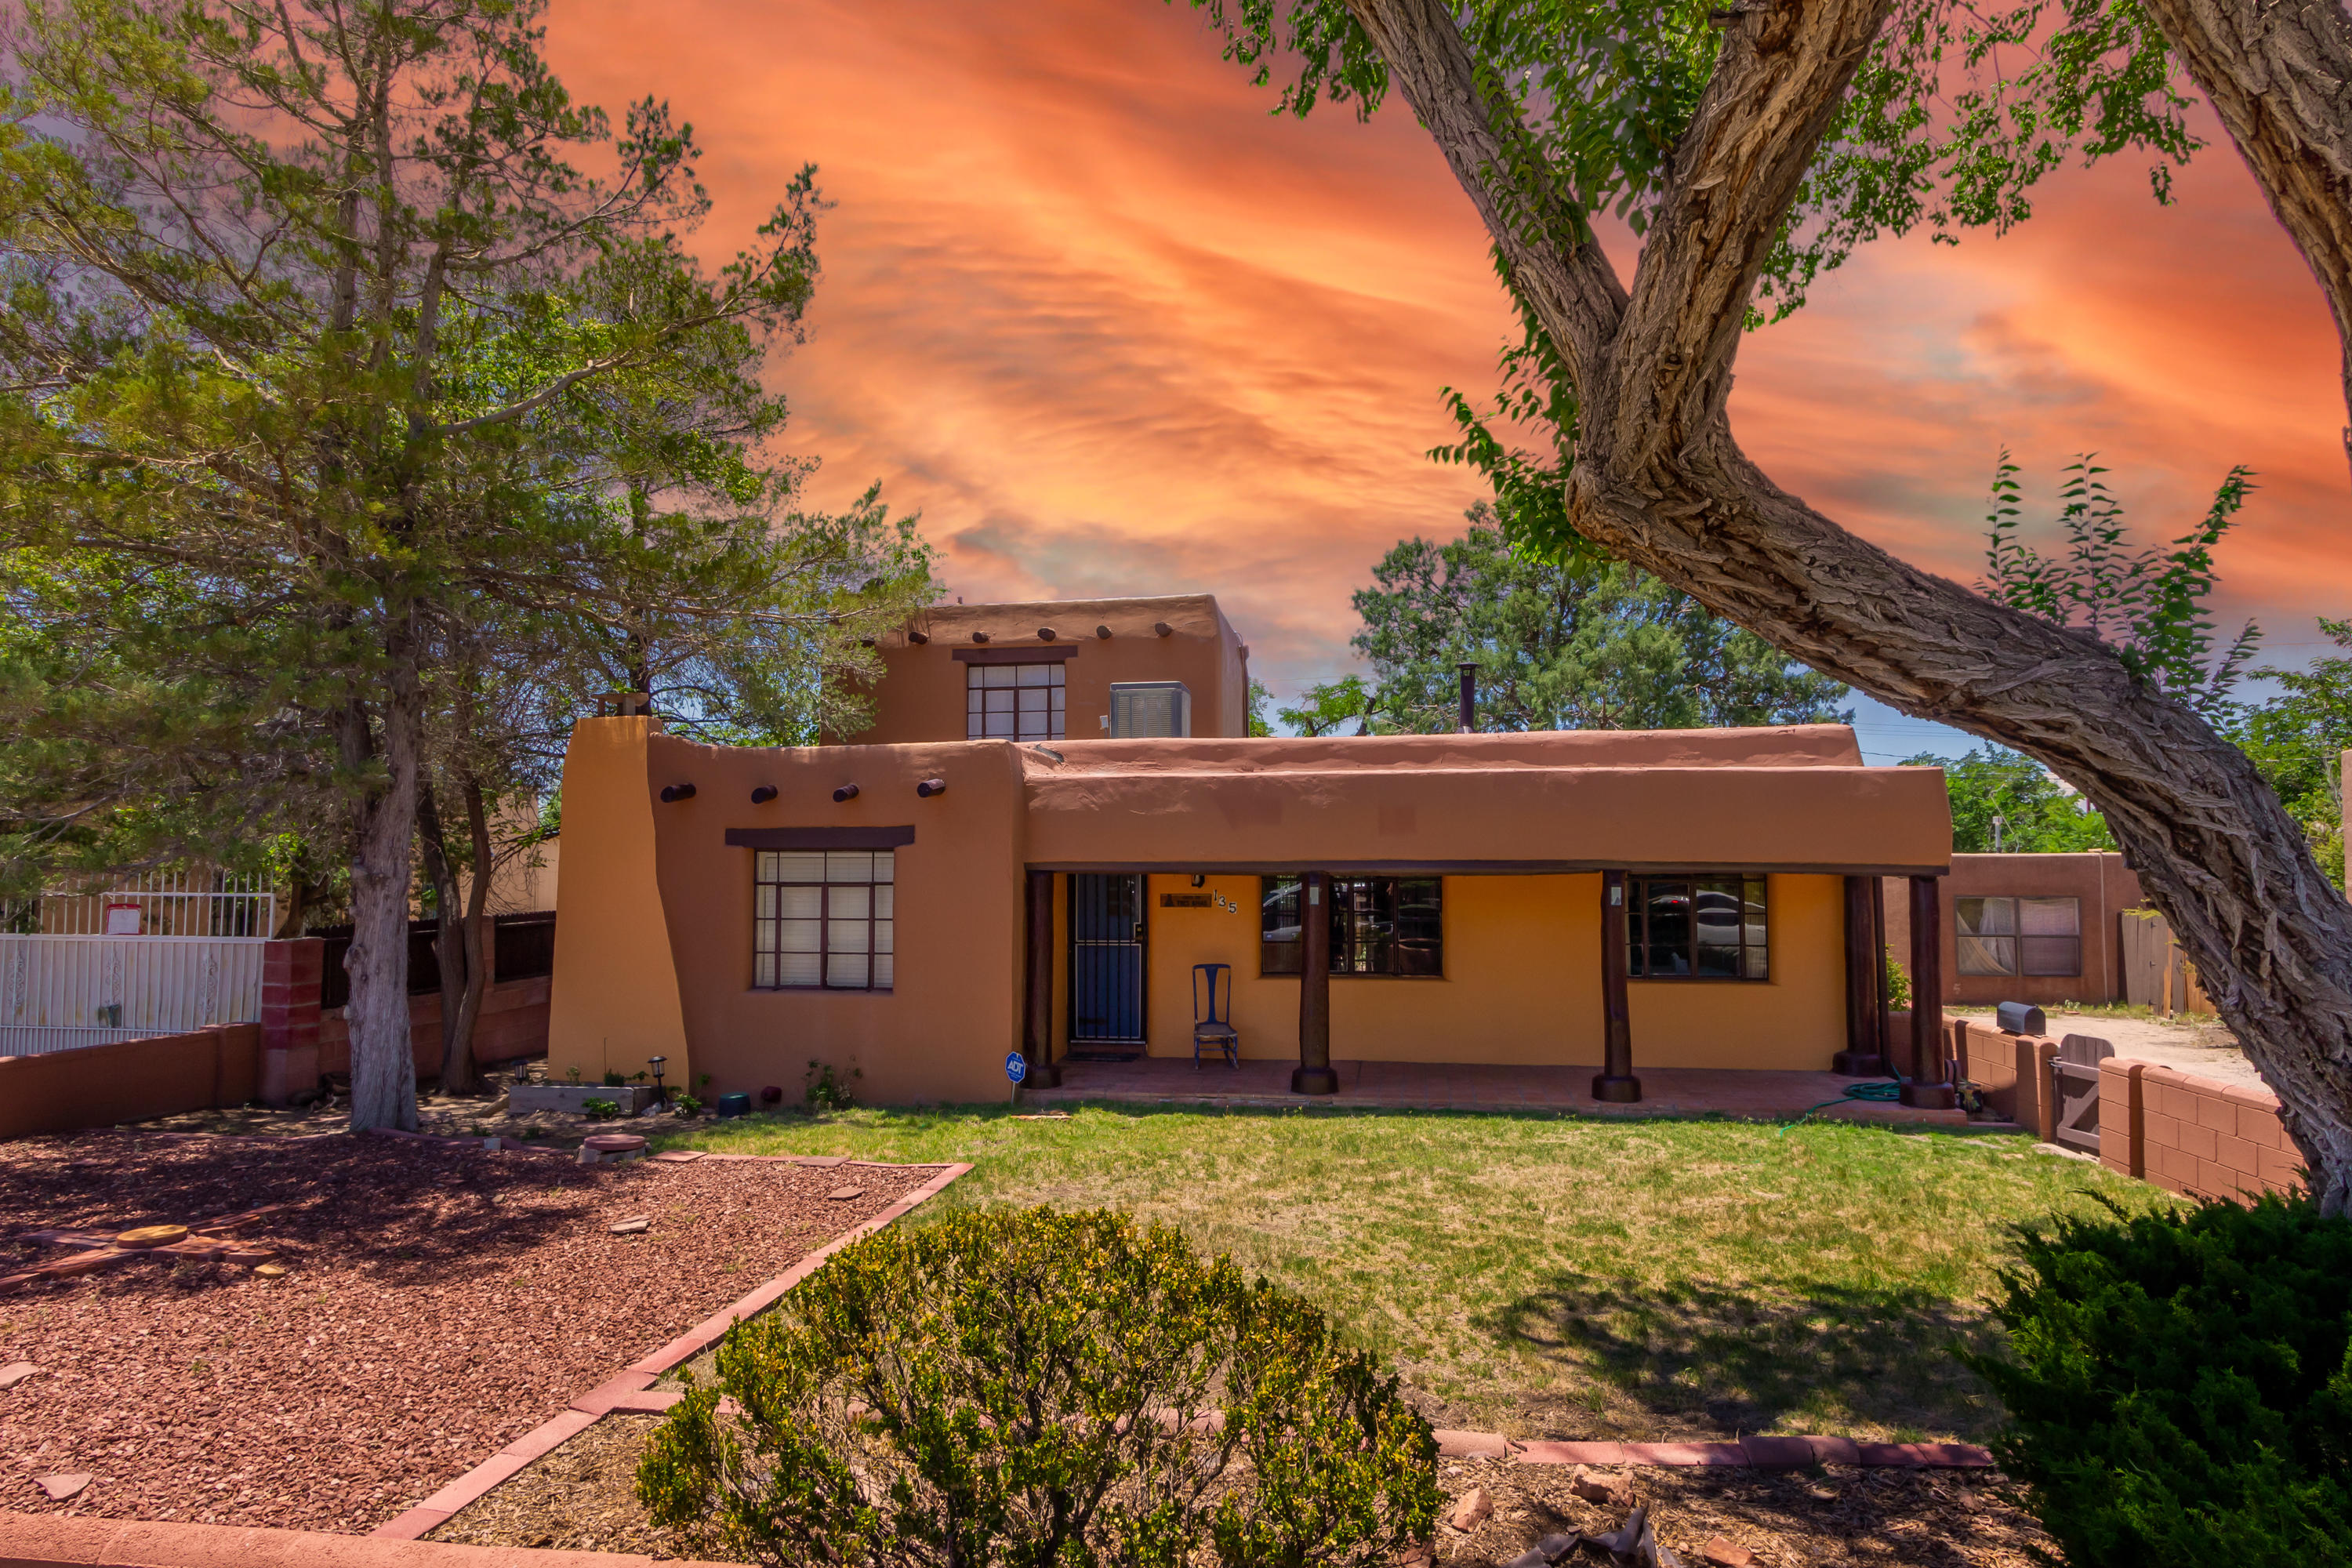 Charming pueblo-style home. Beautiful brick and hardwood floors are married to timbered ceilings, custom wood doors with original rustic hardware and THREE custom Kiva fireplaces. There's a cozy dining area, a sun room and an open kitchen. Brick walls frame the large front and back yards, both well-maintained with mature trees and shrubs. Enjoy Sandia mountain views from the upper bedroom or a quiet moment the very Private backyard. There's also a covered porch off of the two car garage and a place to keep chickens. Close to markets, restaurants and rapid transit.